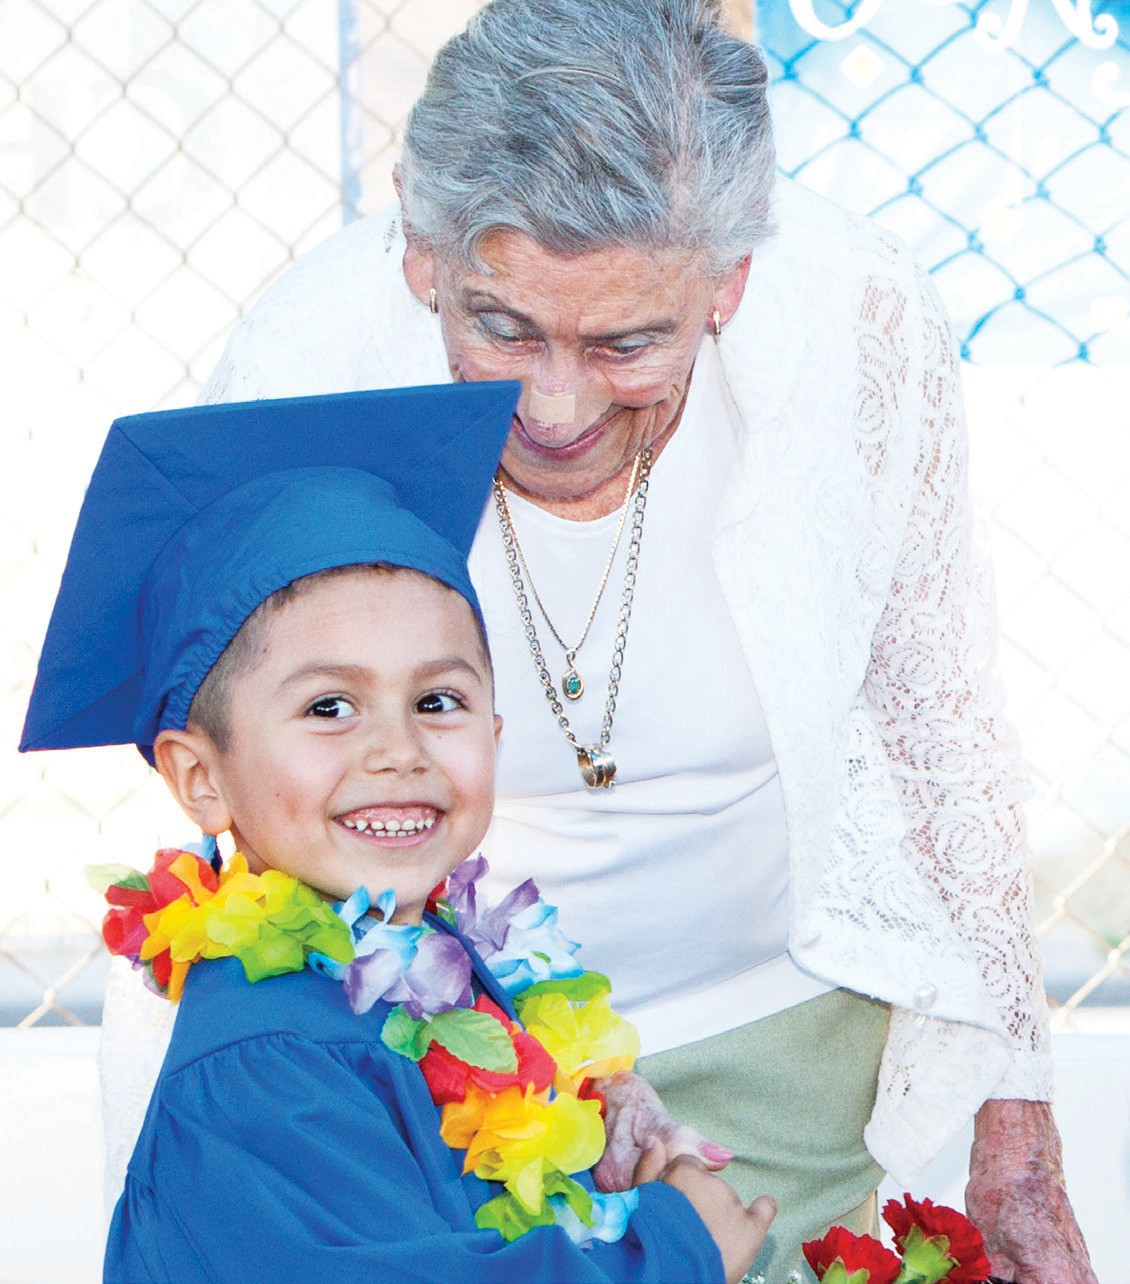 ECCDC preschool graduate Abraham Gonzalez is all smiles as he received congratulations from ECCDC founder Lorraine Boyce. Gonzalez was part of the ceremony to graduate 84 preschool students who will be attending kindergarten in the fall. Lorraine Boyce started the preschool 42 years ago.